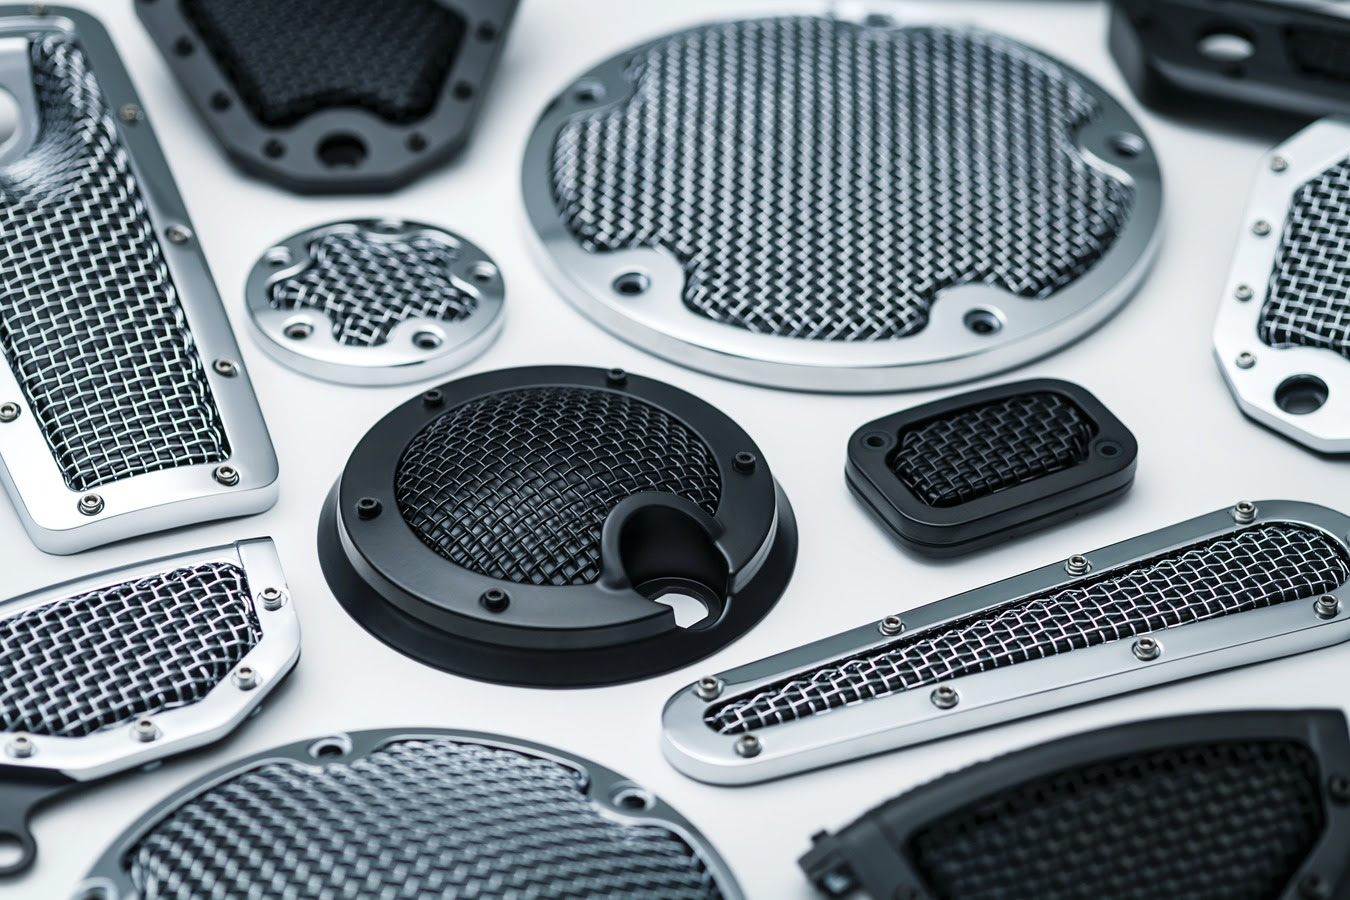 KURYAKYN INTRODUCES ALL-NEW MESH COLLECTION